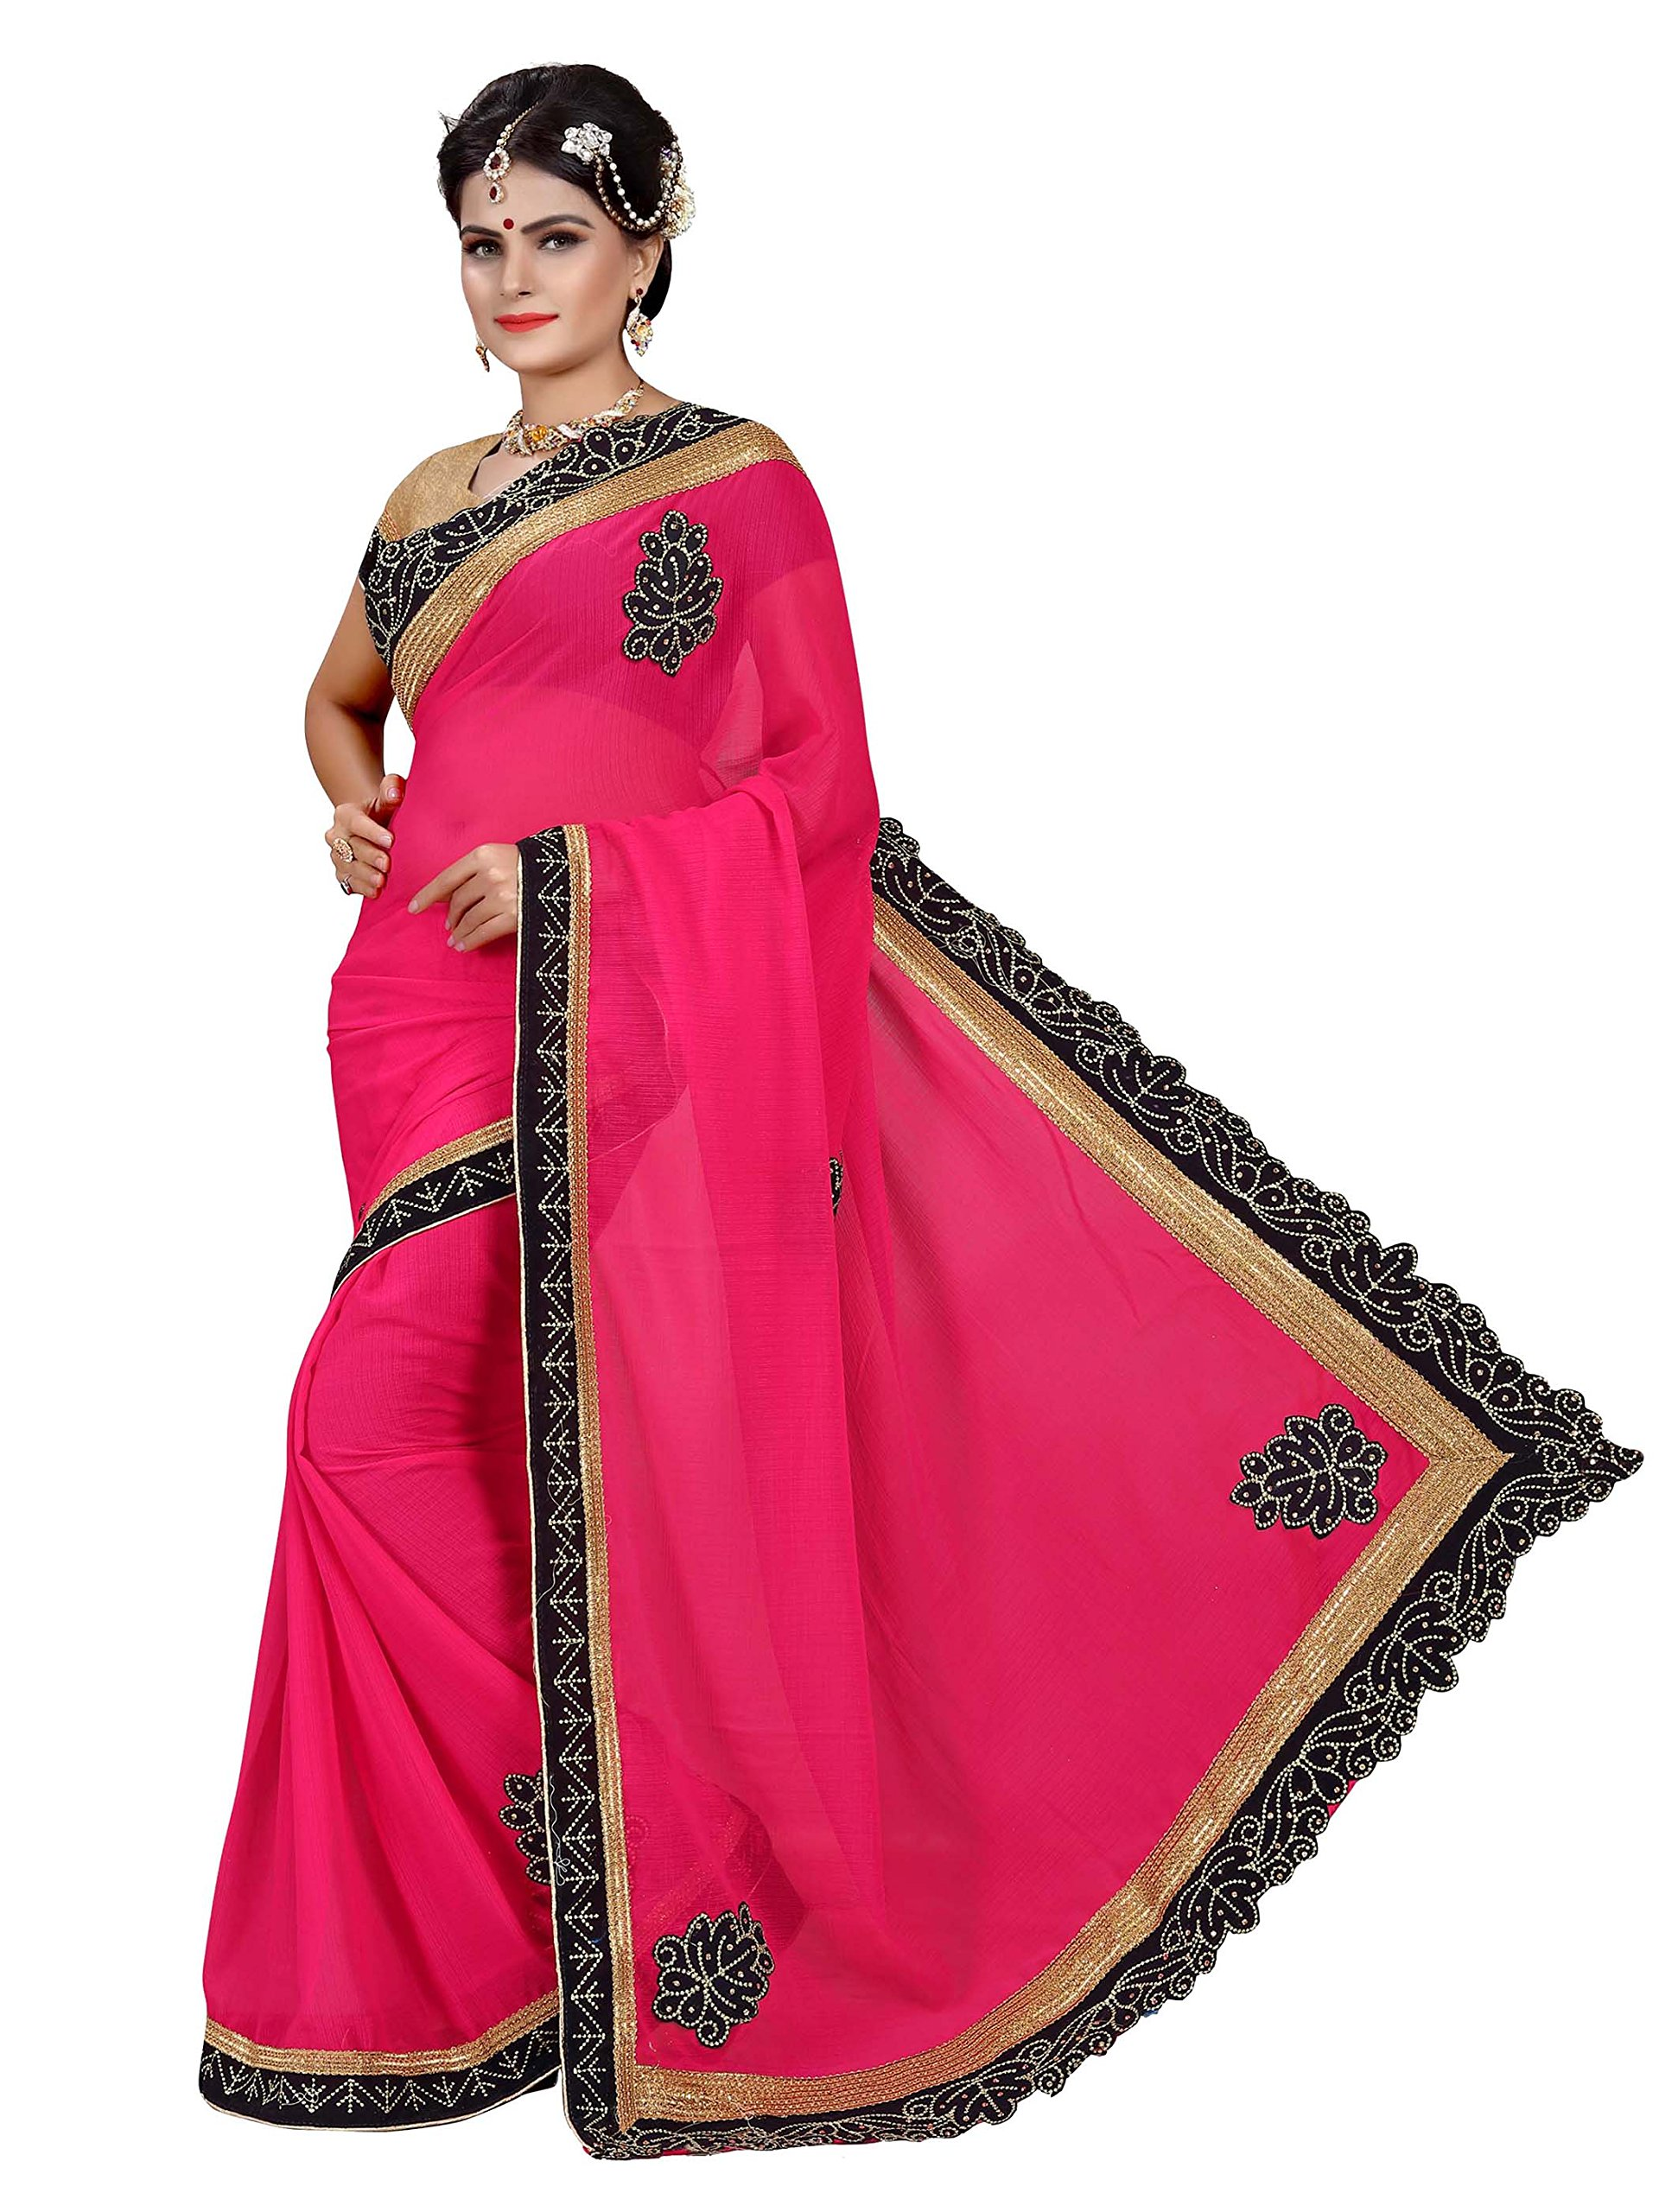 744feae12bbe2 Women s Party Wear Butti   Patch Work Half   Half Saree With Unstitched  Blouse